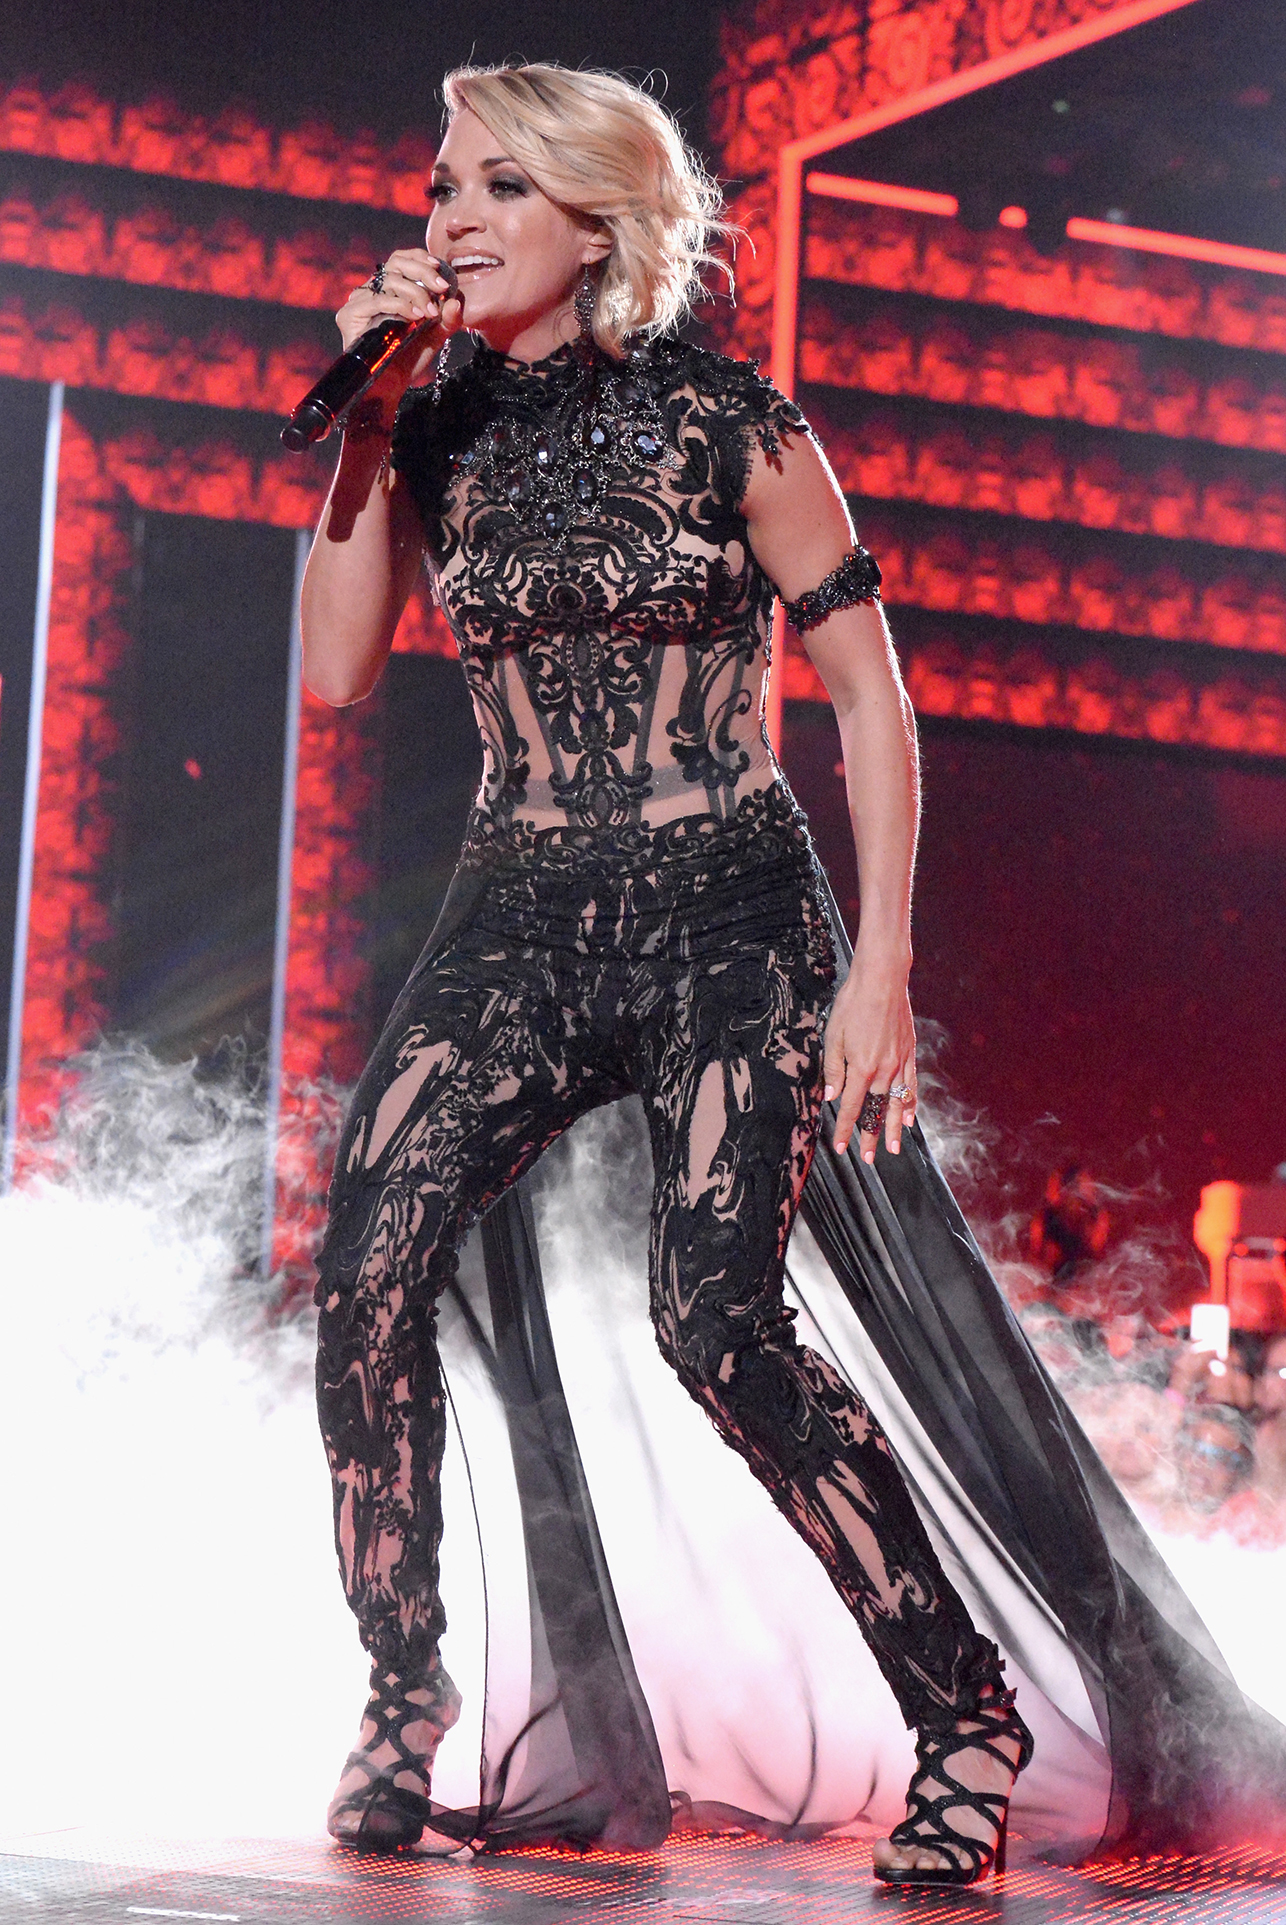 Carrie Underwood's CMT Looks - Lead